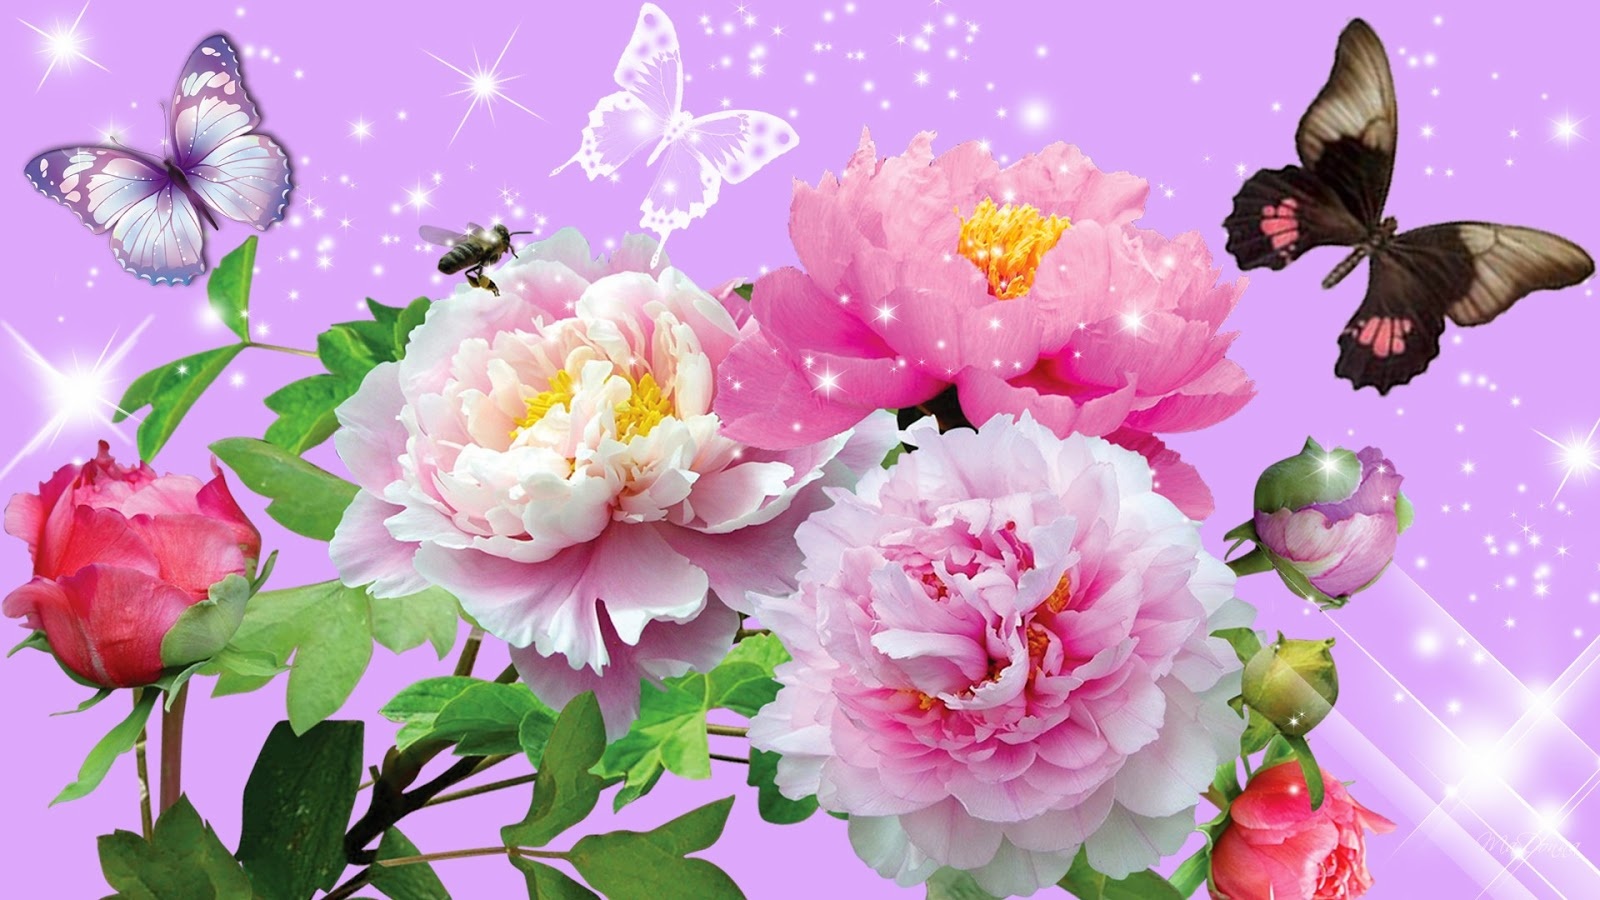 Beautiful Images Of Nature And Flowers